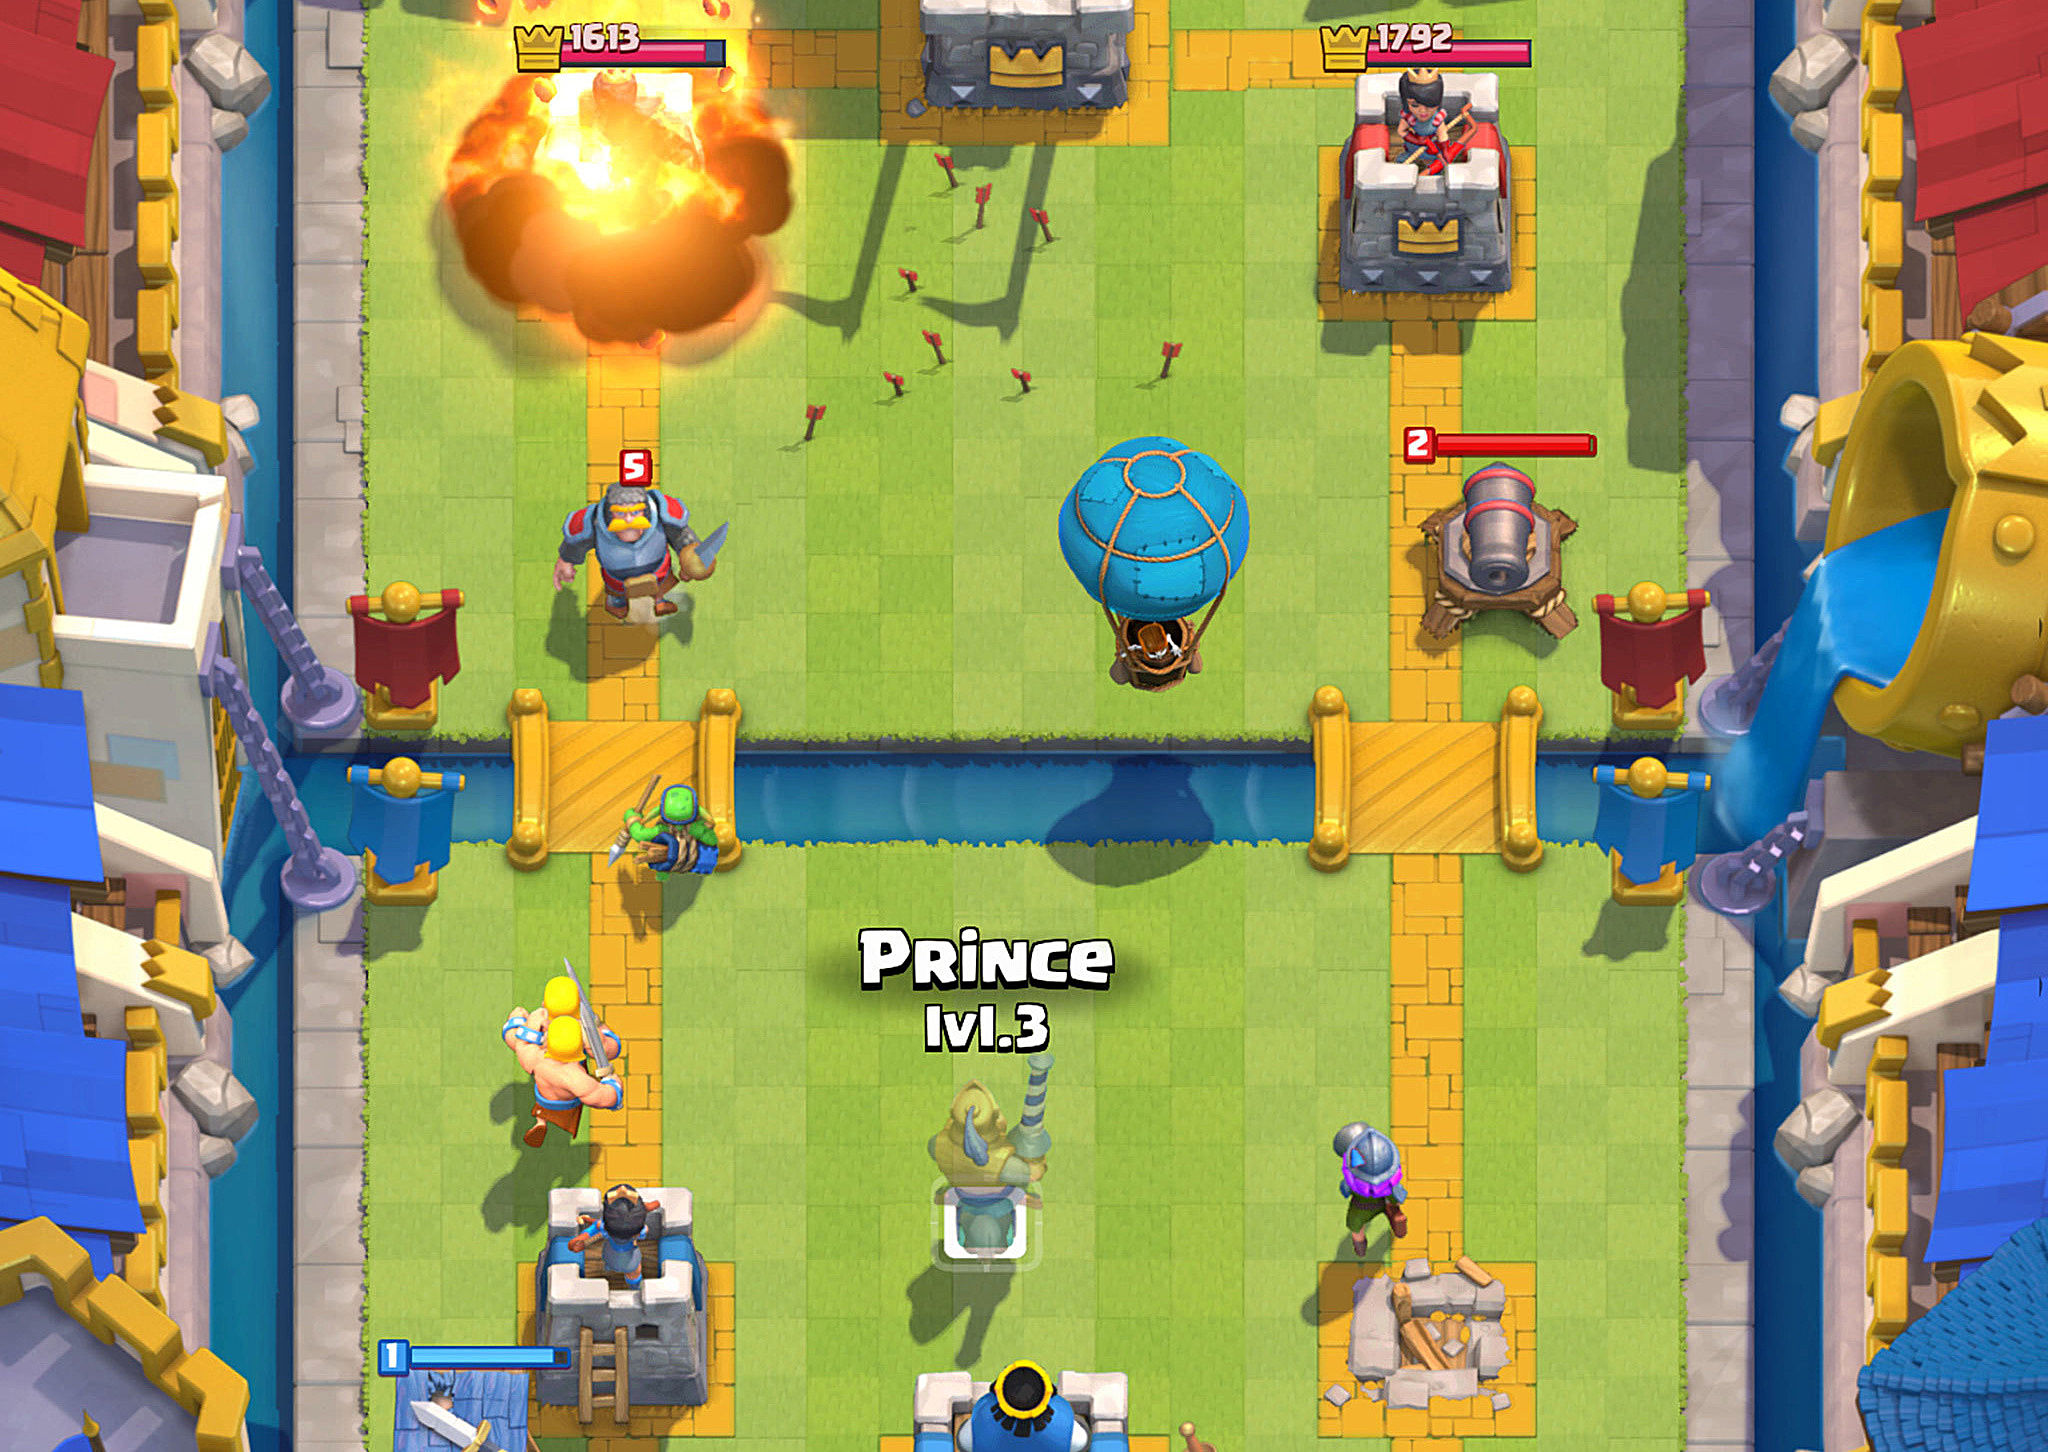 clash royale deck building guide how to advance in arena clash royale. Black Bedroom Furniture Sets. Home Design Ideas